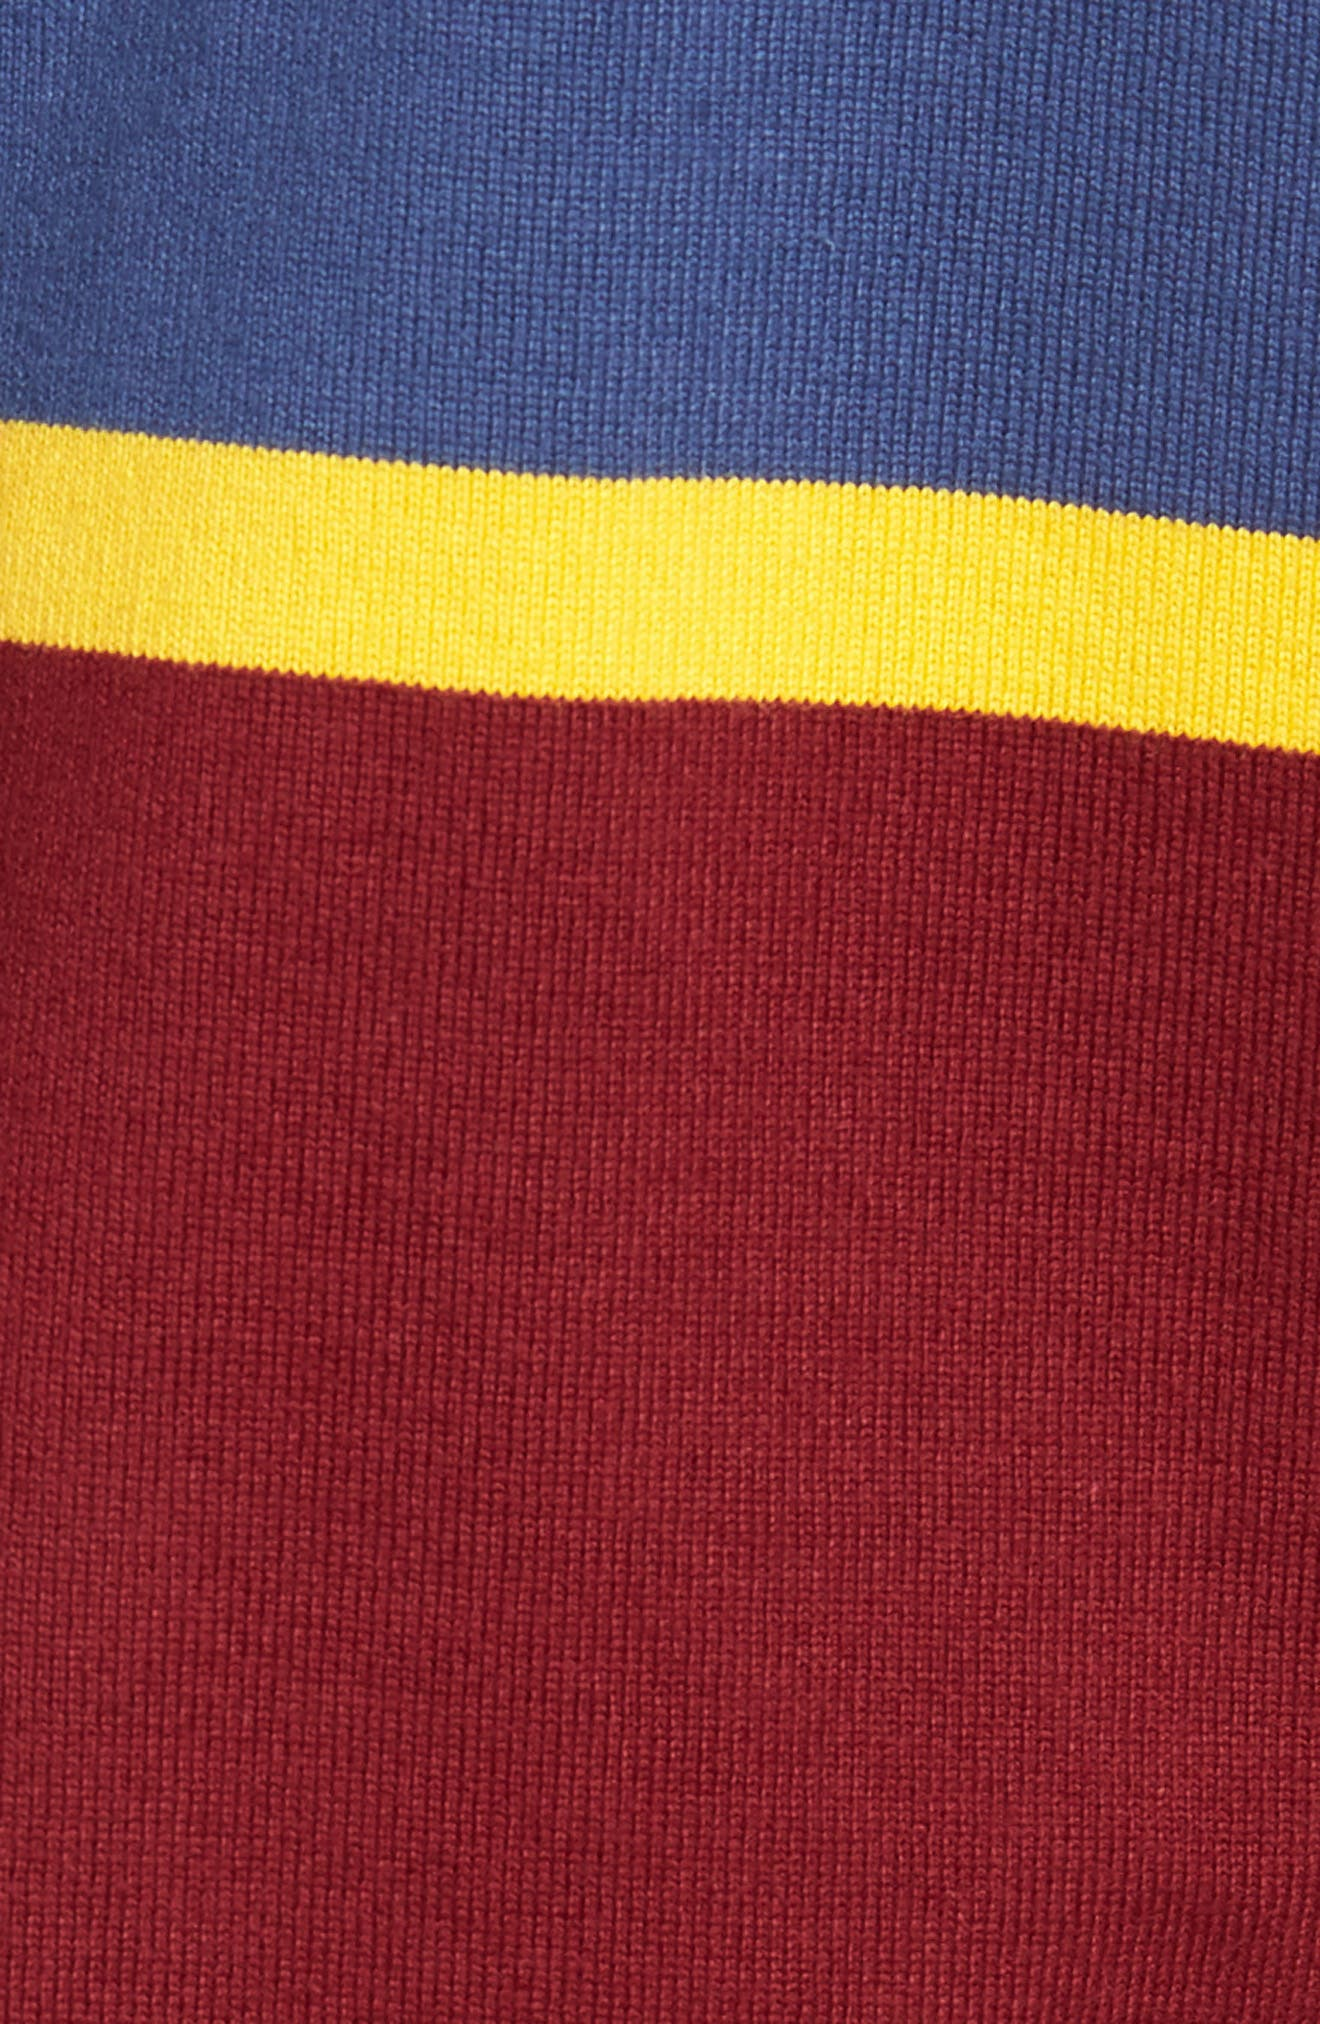 1984 Rugby Shirt,                             Alternate thumbnail 5, color,                             930